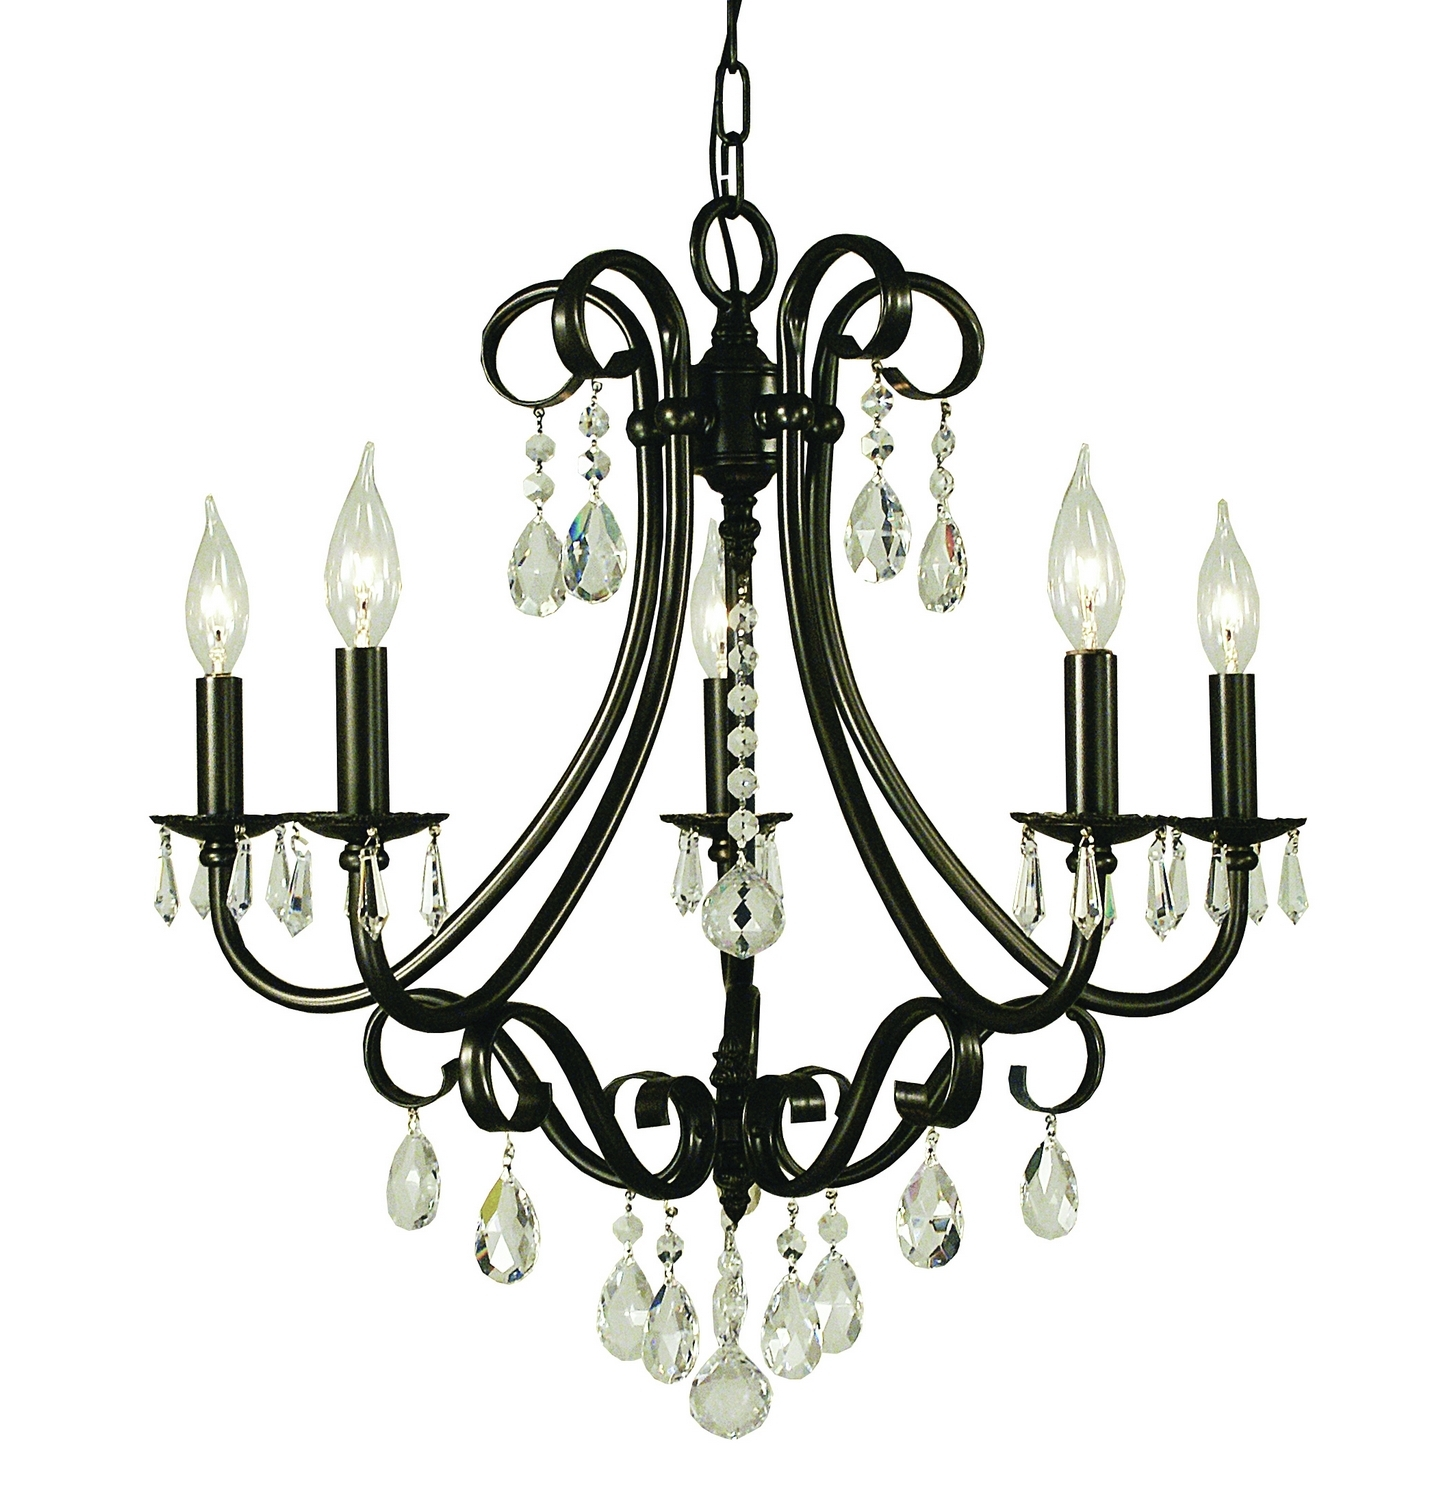 Most Popular Traditional Chandeliers In Choosing Chandeliers For A Traditional Kitchen (View 12 of 20)